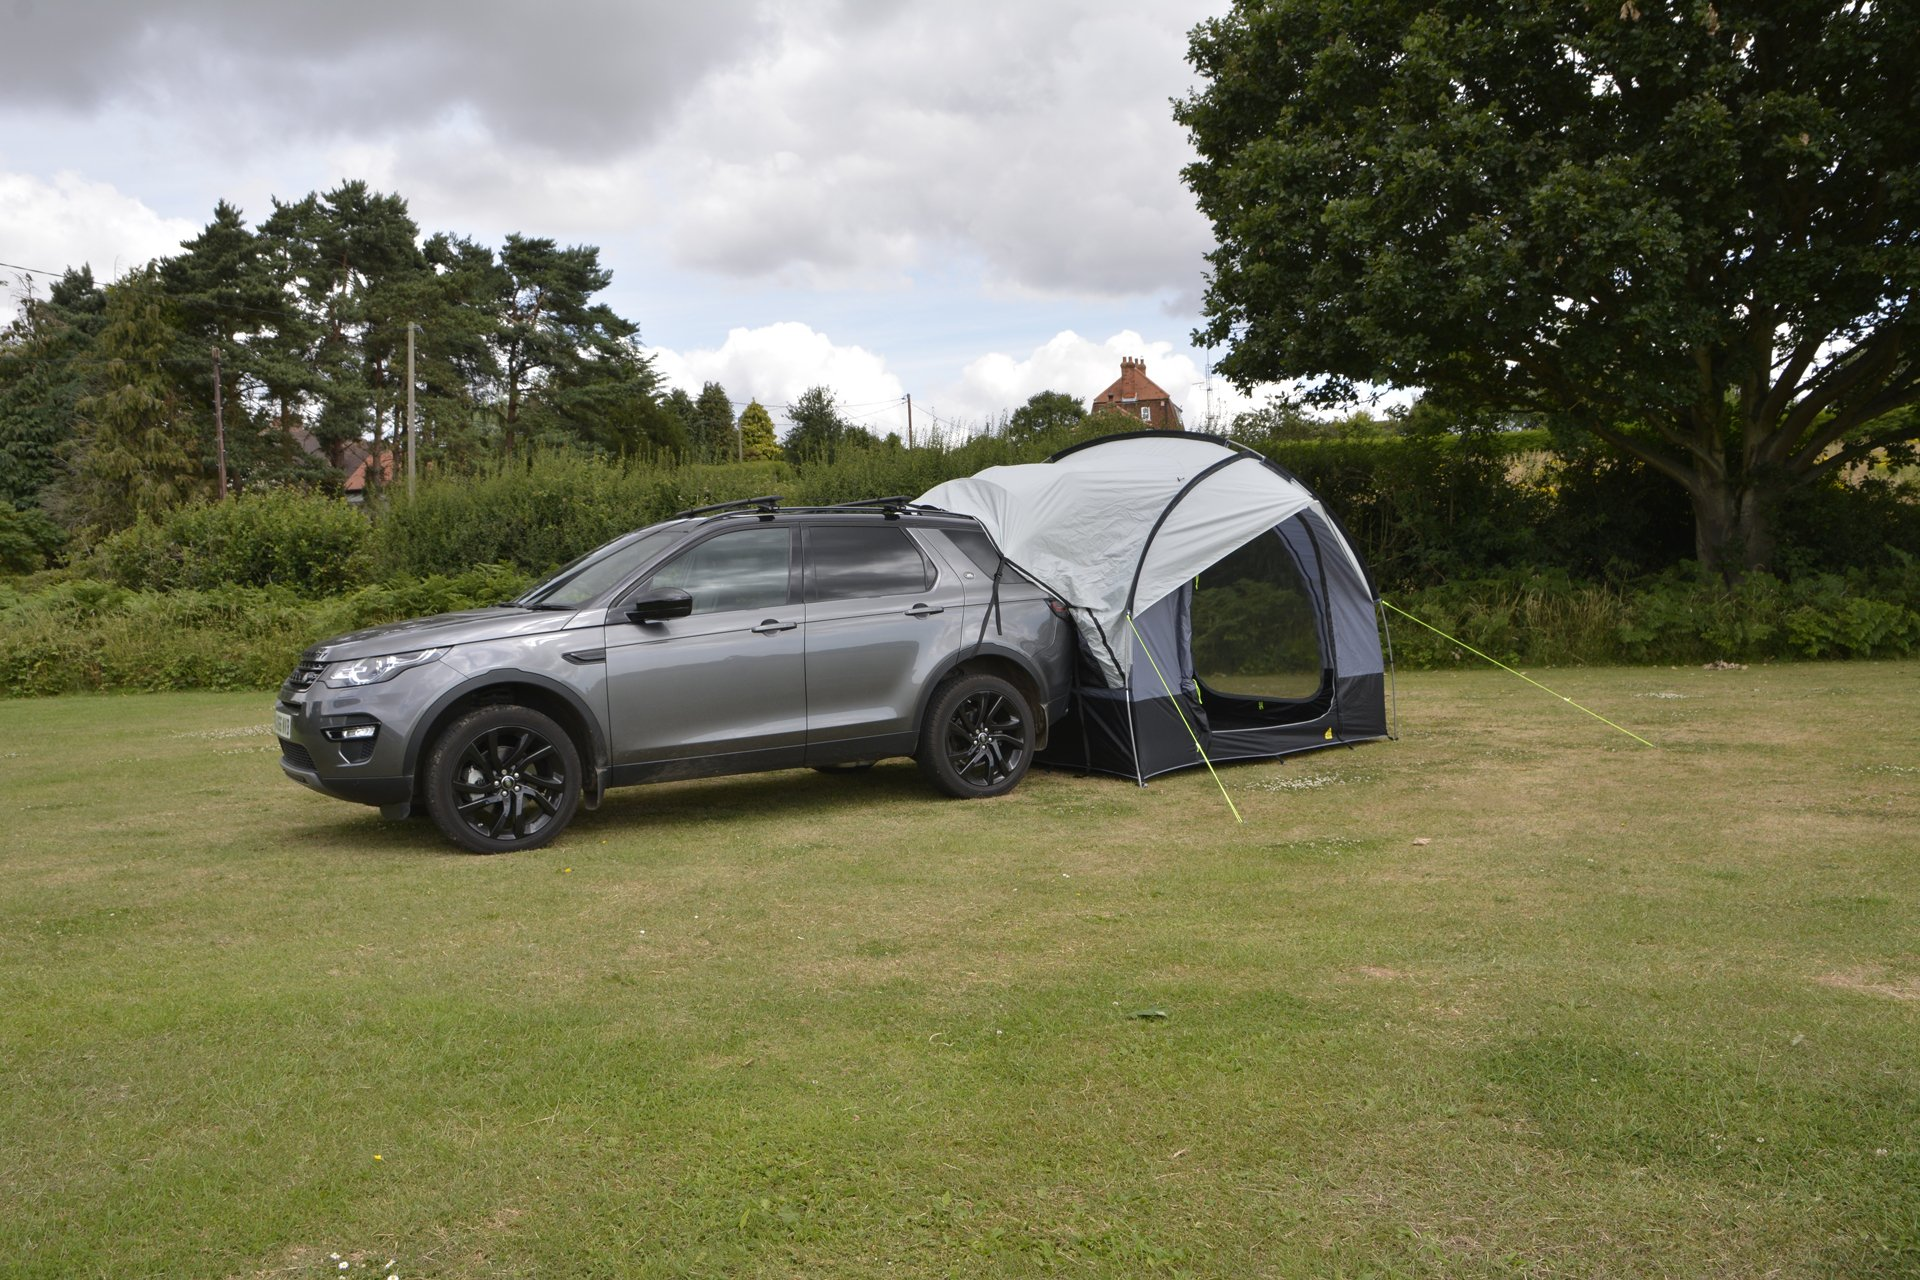 Kampa Dometic Tailgater Driveaway Awning - Camper Essentials